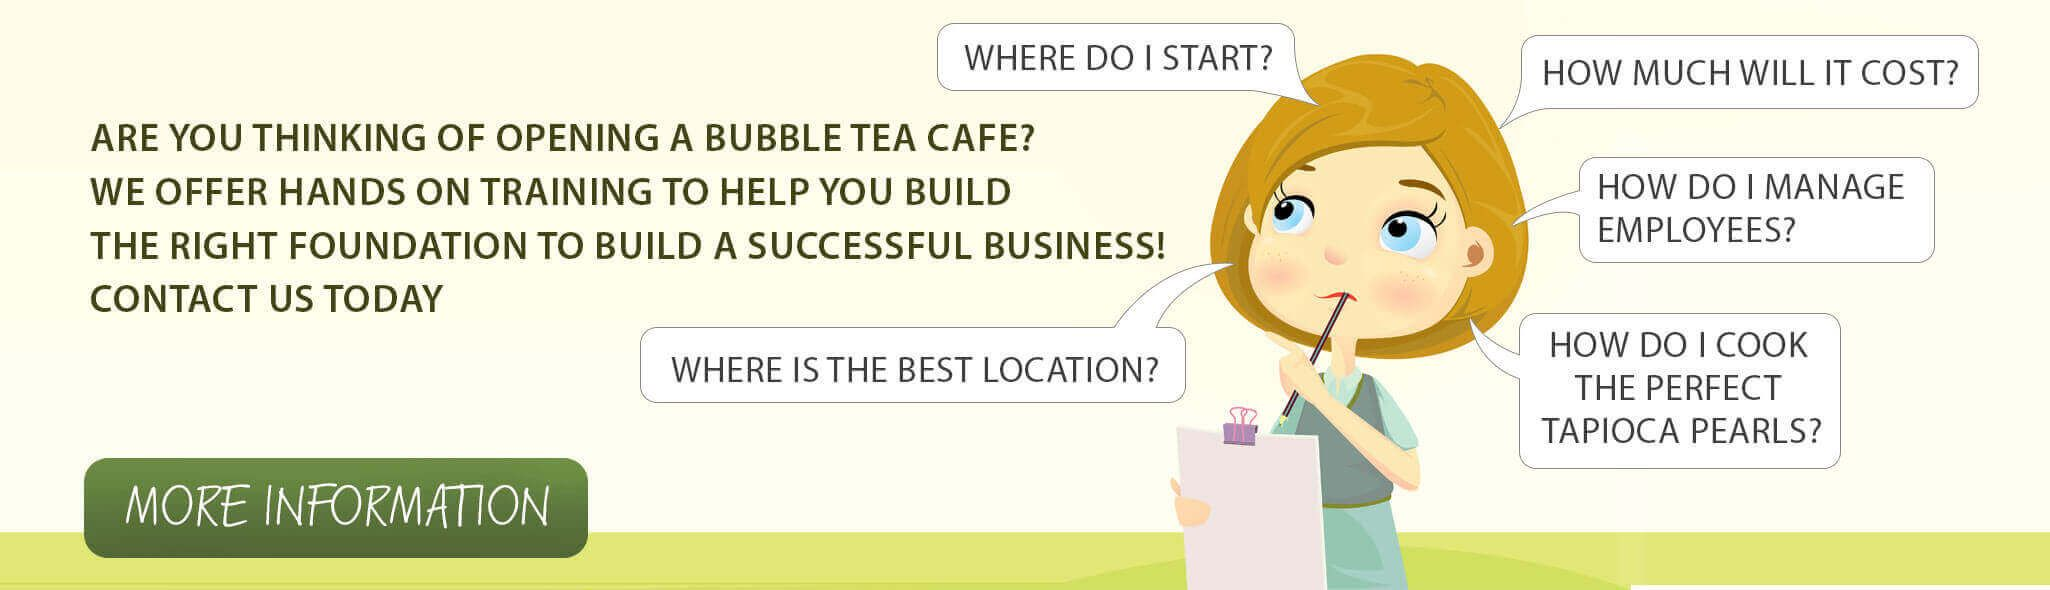 Come Join Us For Our Bubble Tea Snow Fluff Coffee Hands On Training